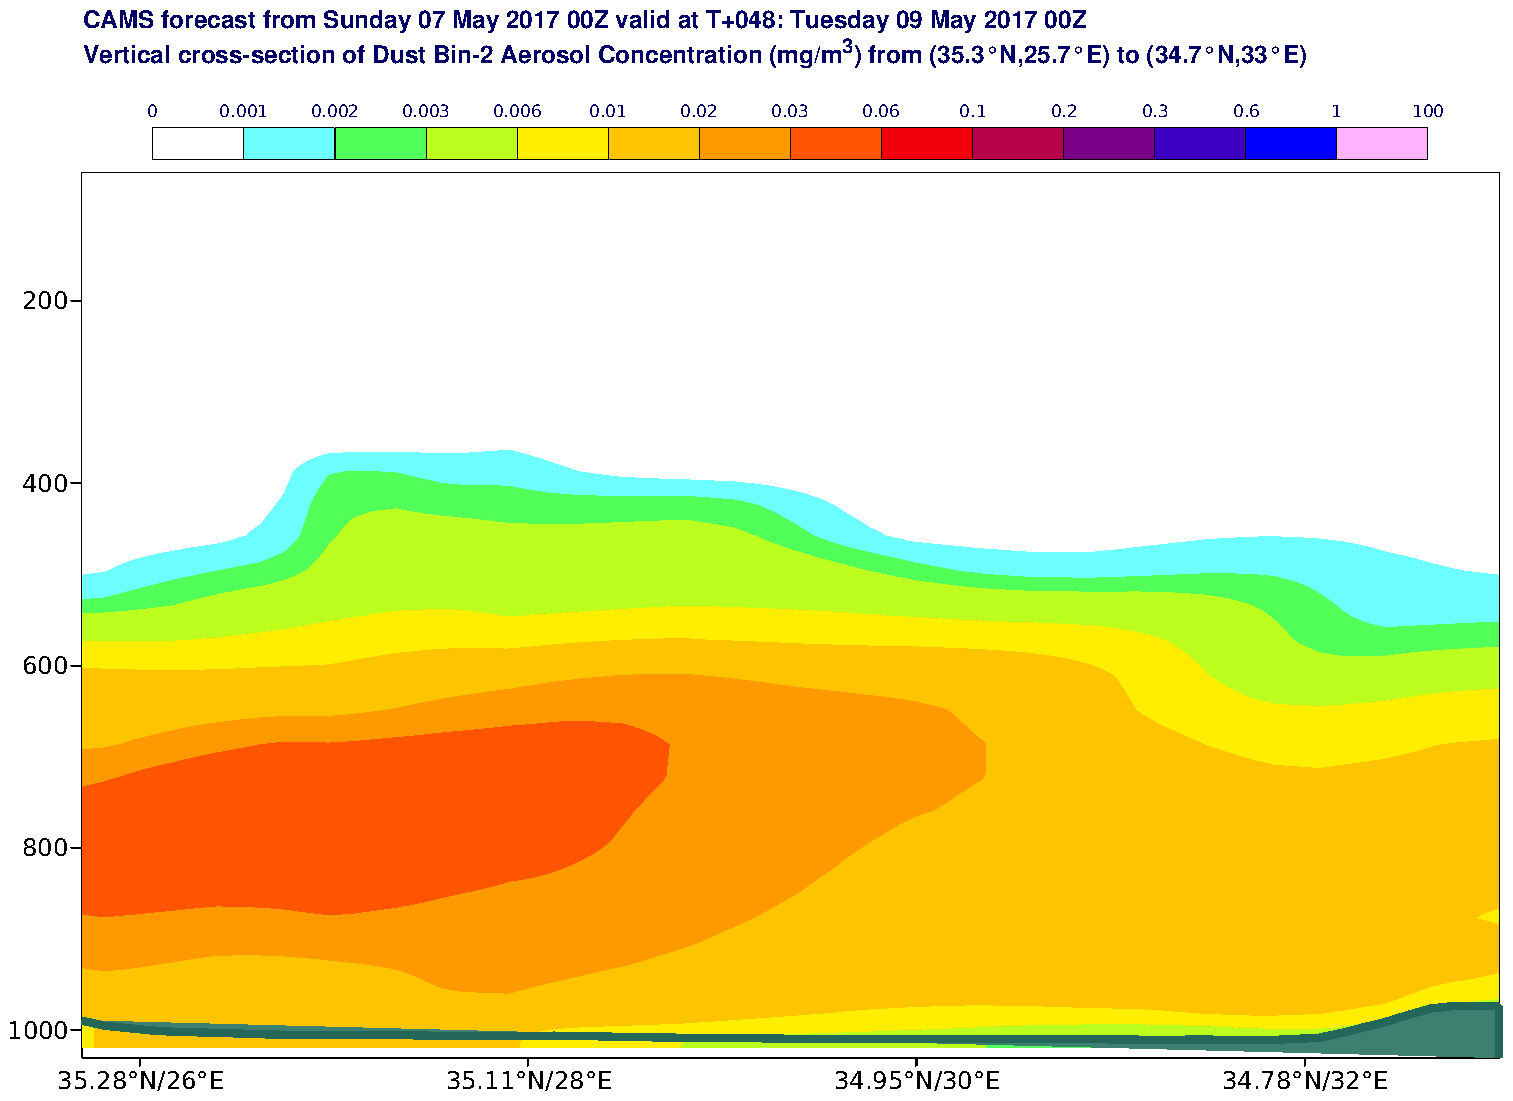 Vertical cross-section of Dust Bin-2 Aerosol Concentration (mg/m3) valid at T48 - 2017-05-09 00:00